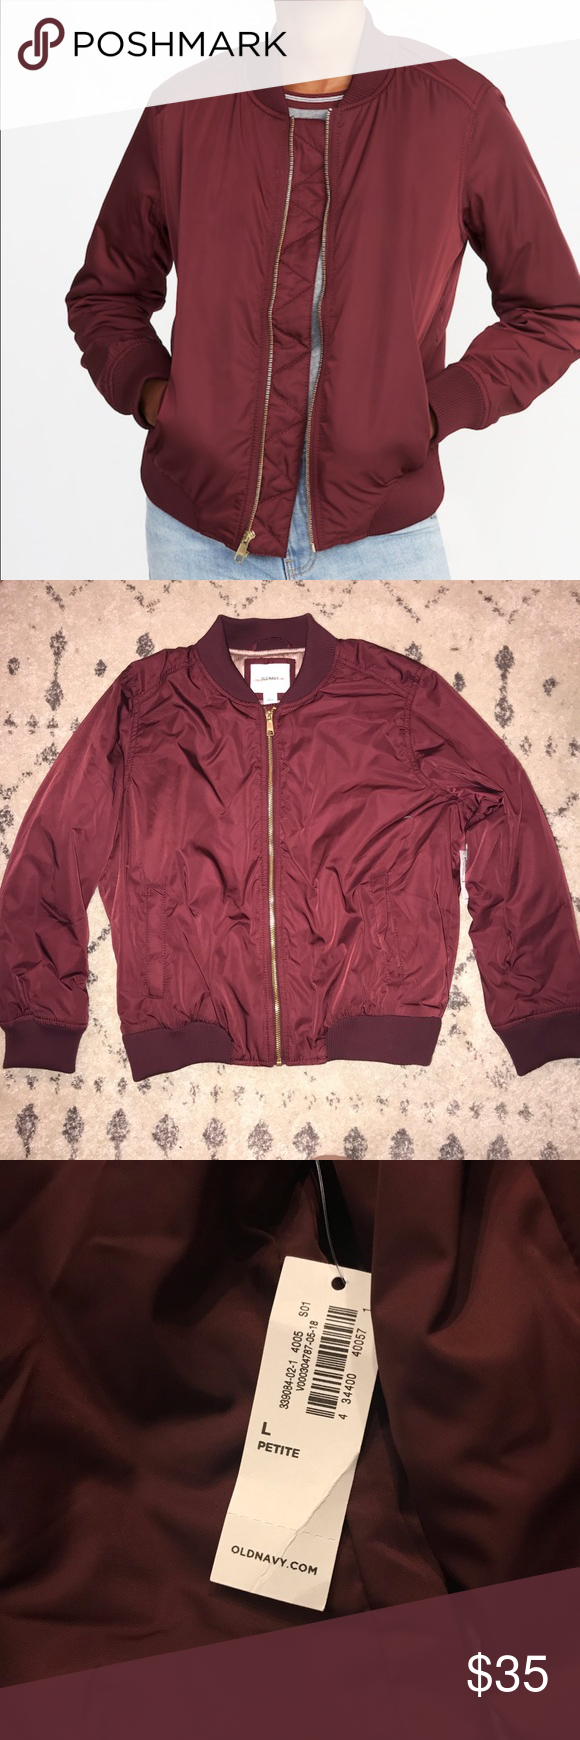 Old Navy Satin Zip Bomber Jacket Color  Wine Purple Slightly fitted through  body. Bomber 309e5c5f5b03